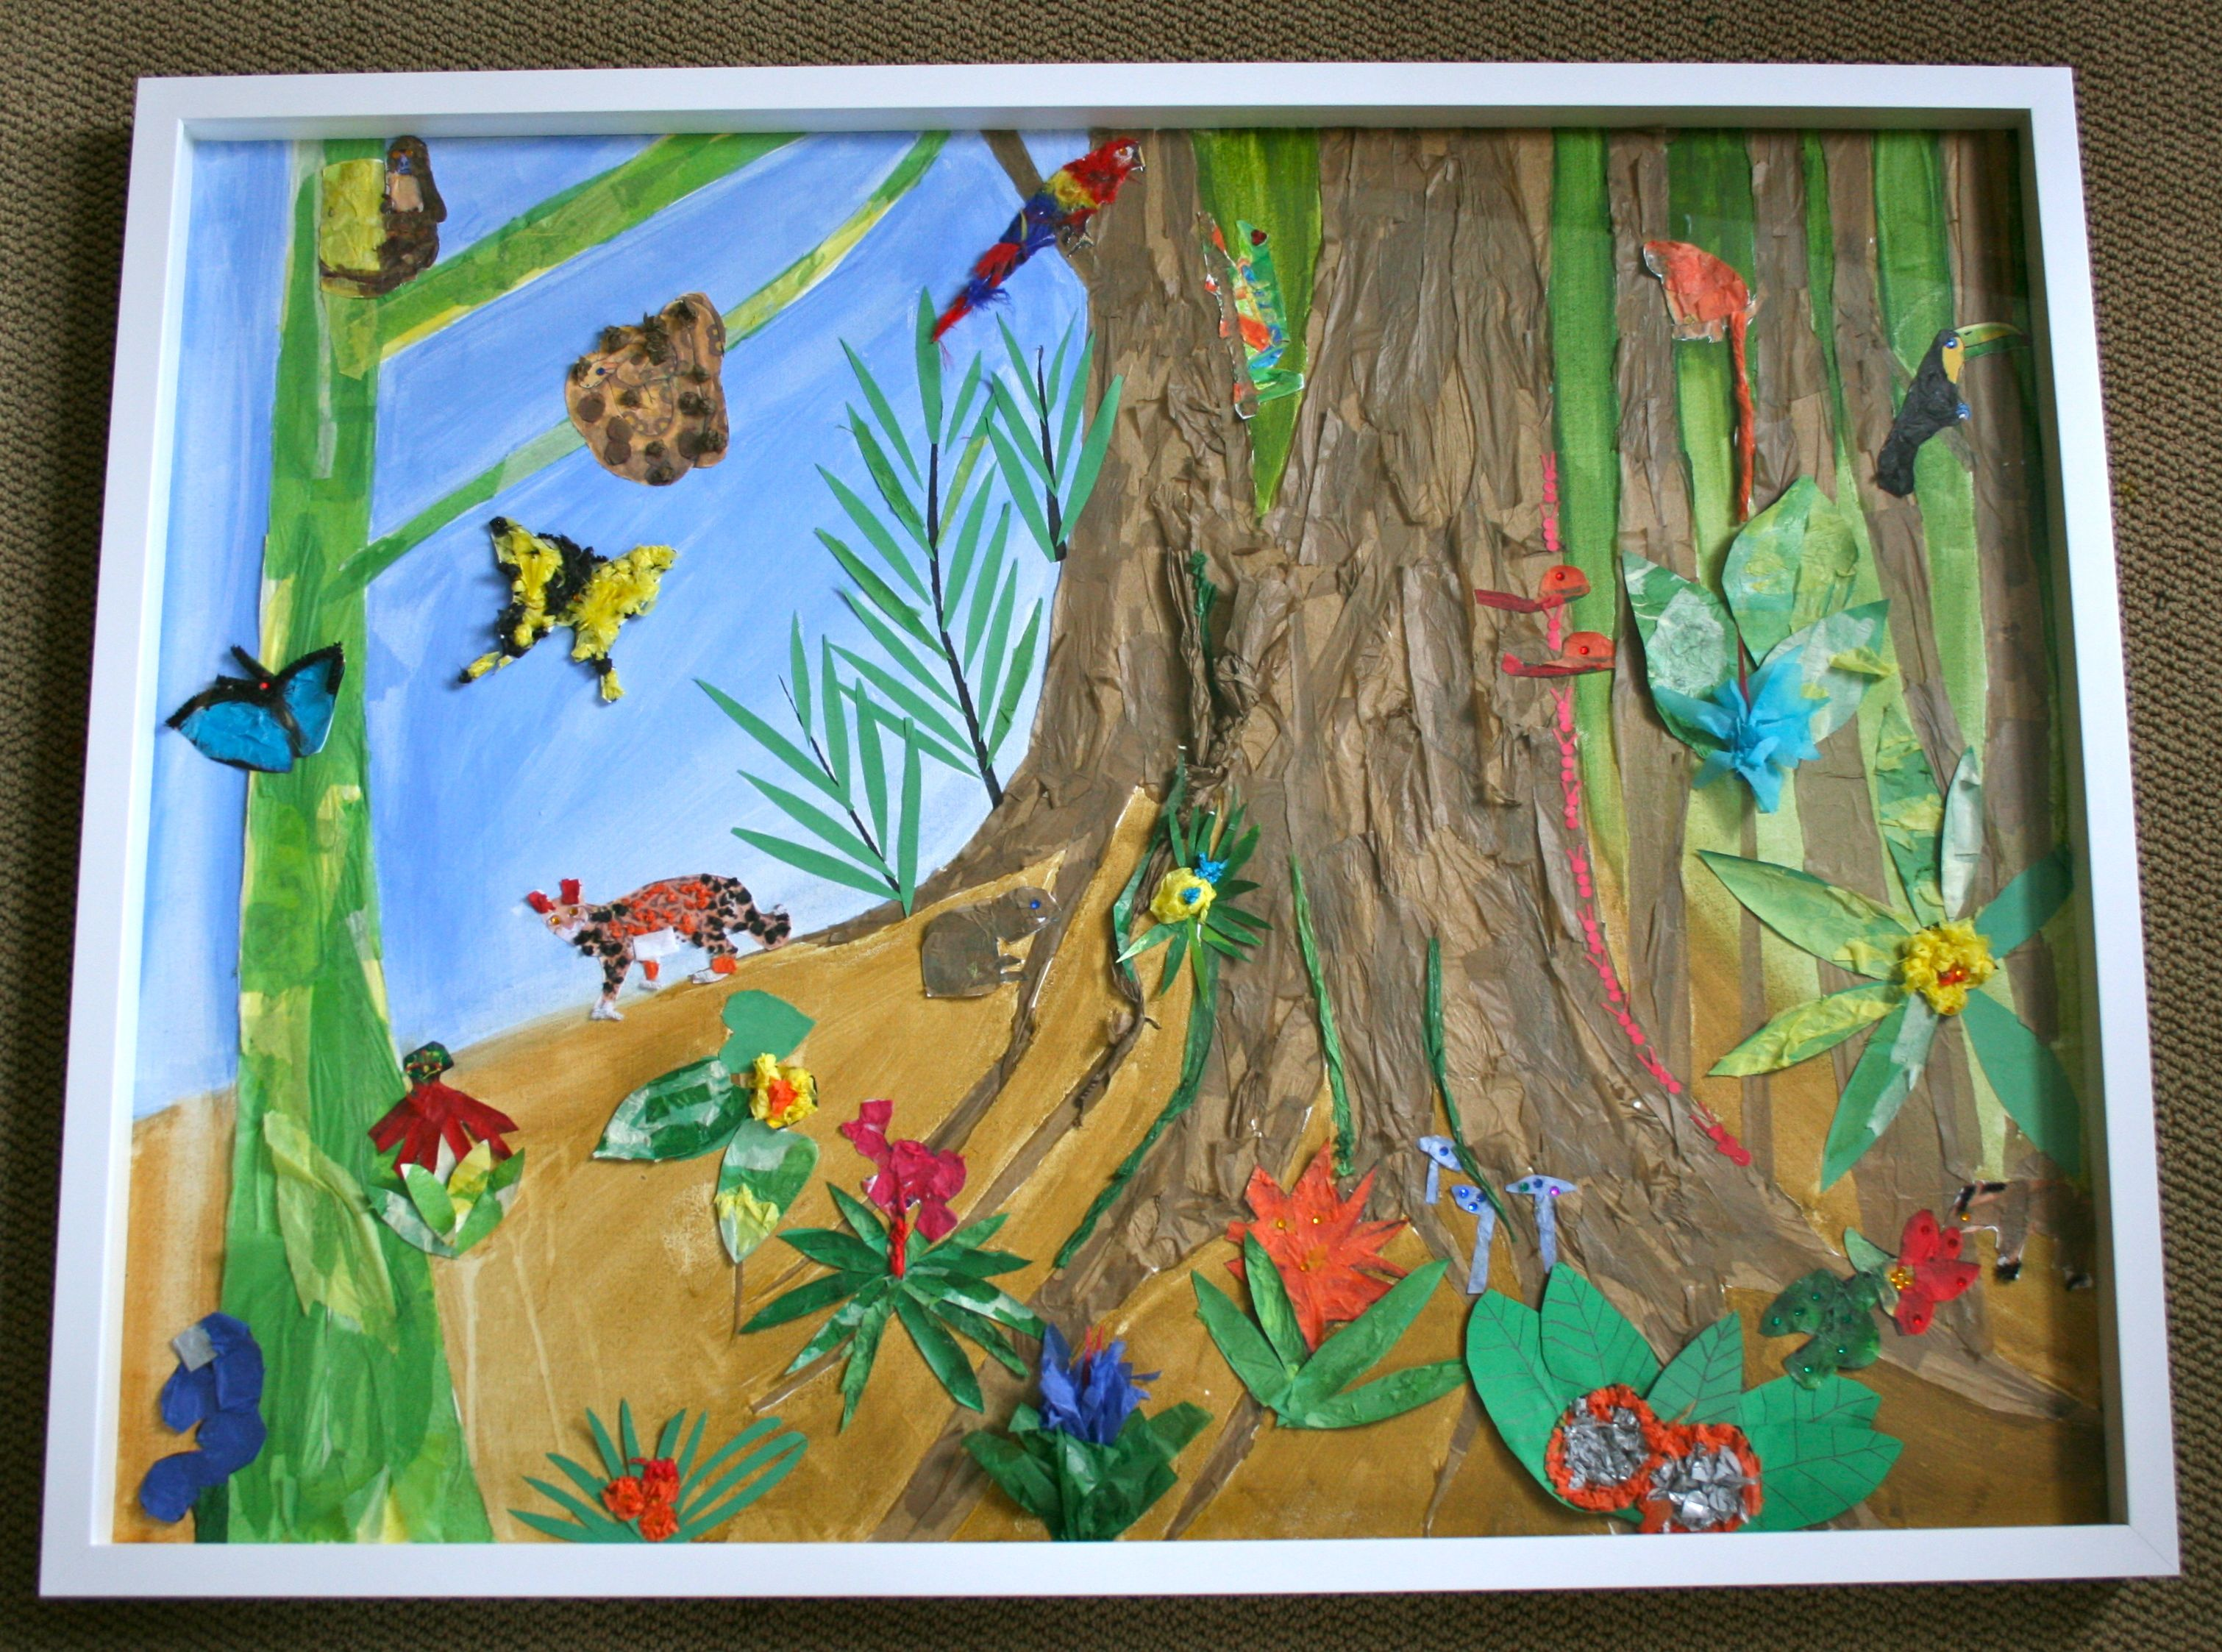 Drawn rainforest collage ks2 1st grade collage collage project